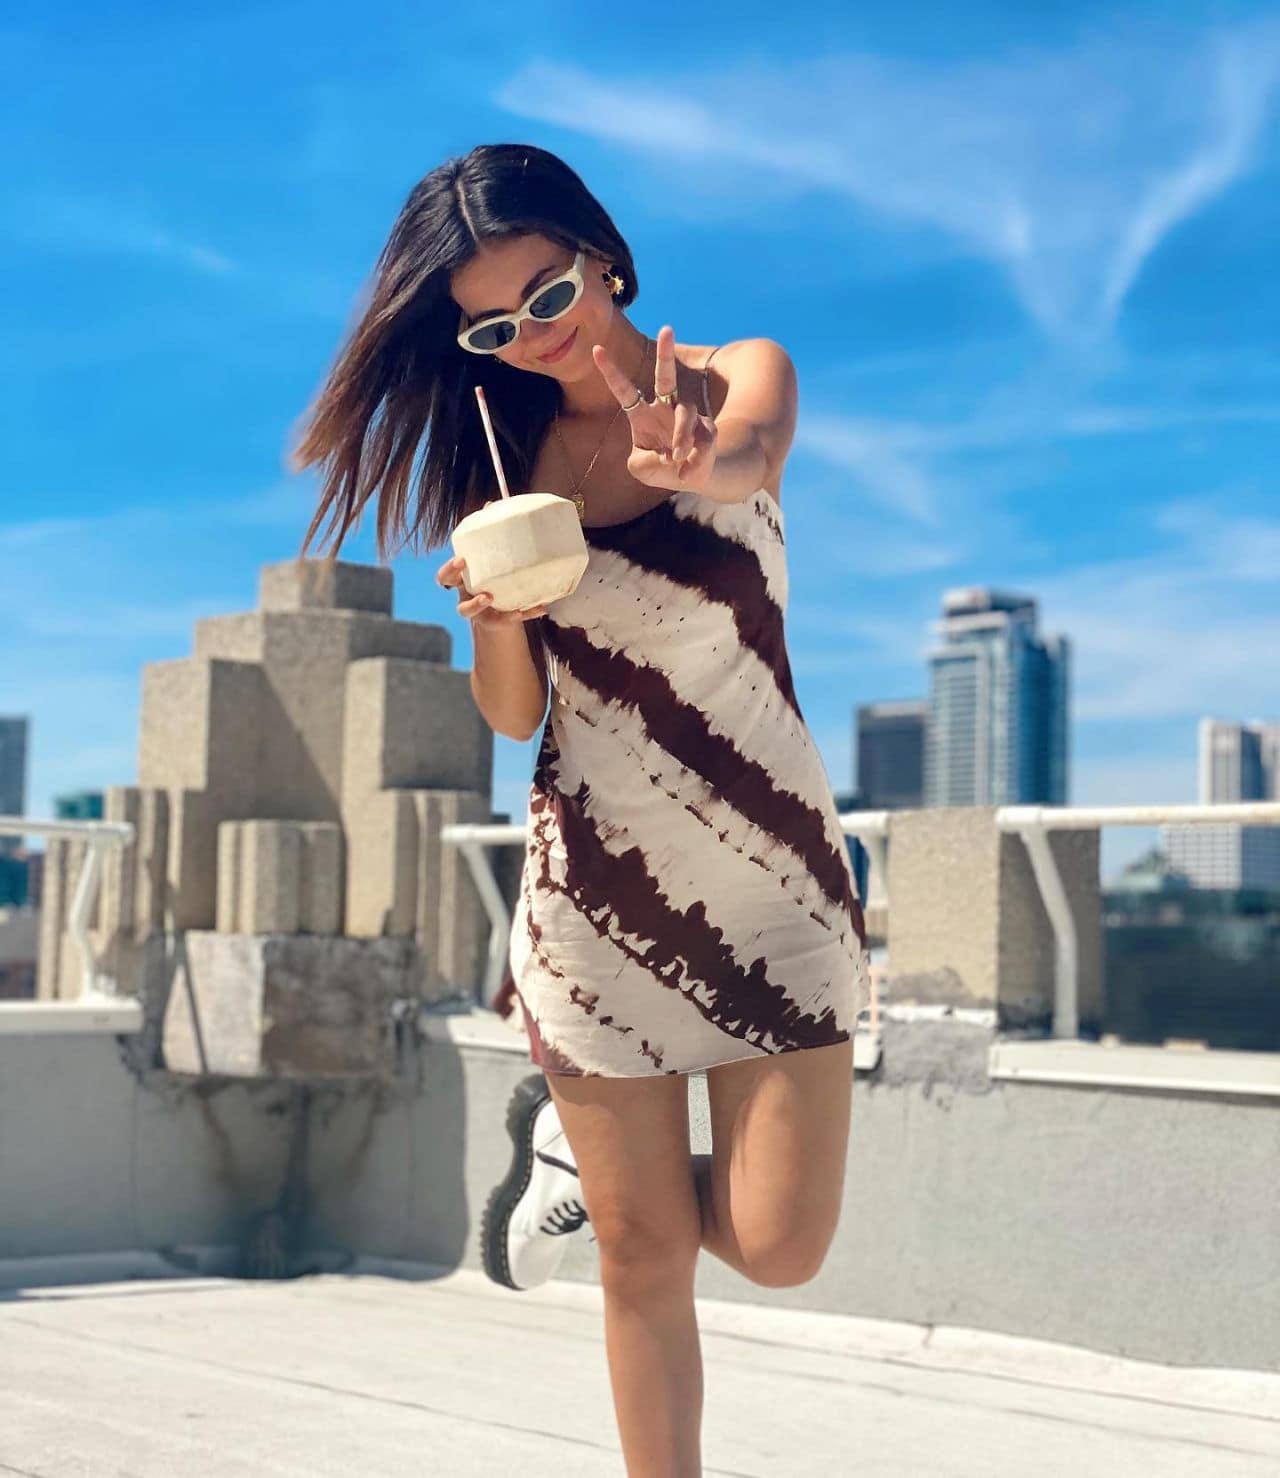 Victoria Justice Posing in Chic Short Dress on Instagram